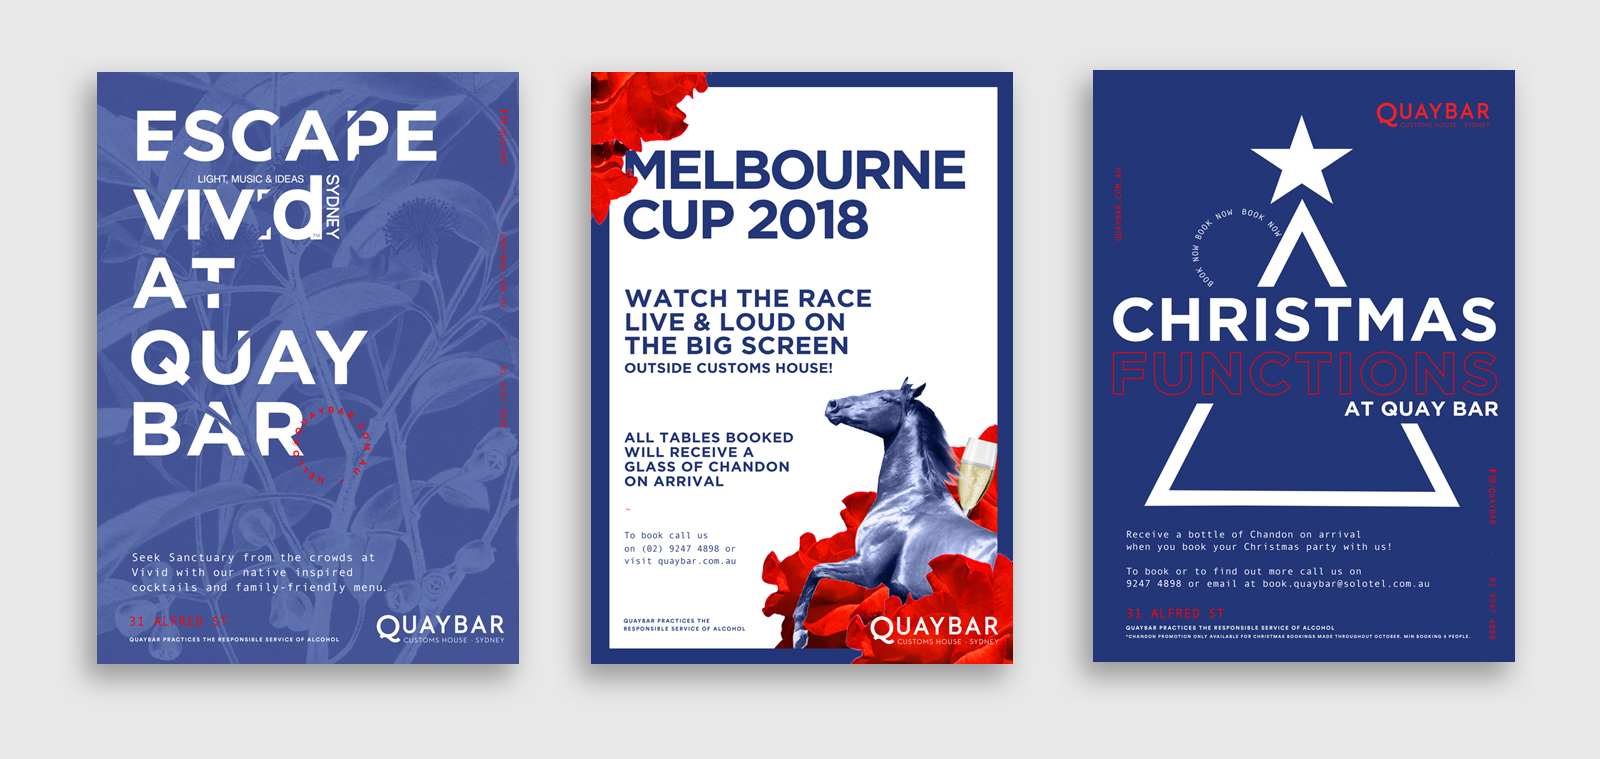 three poster designs for events at quay bar